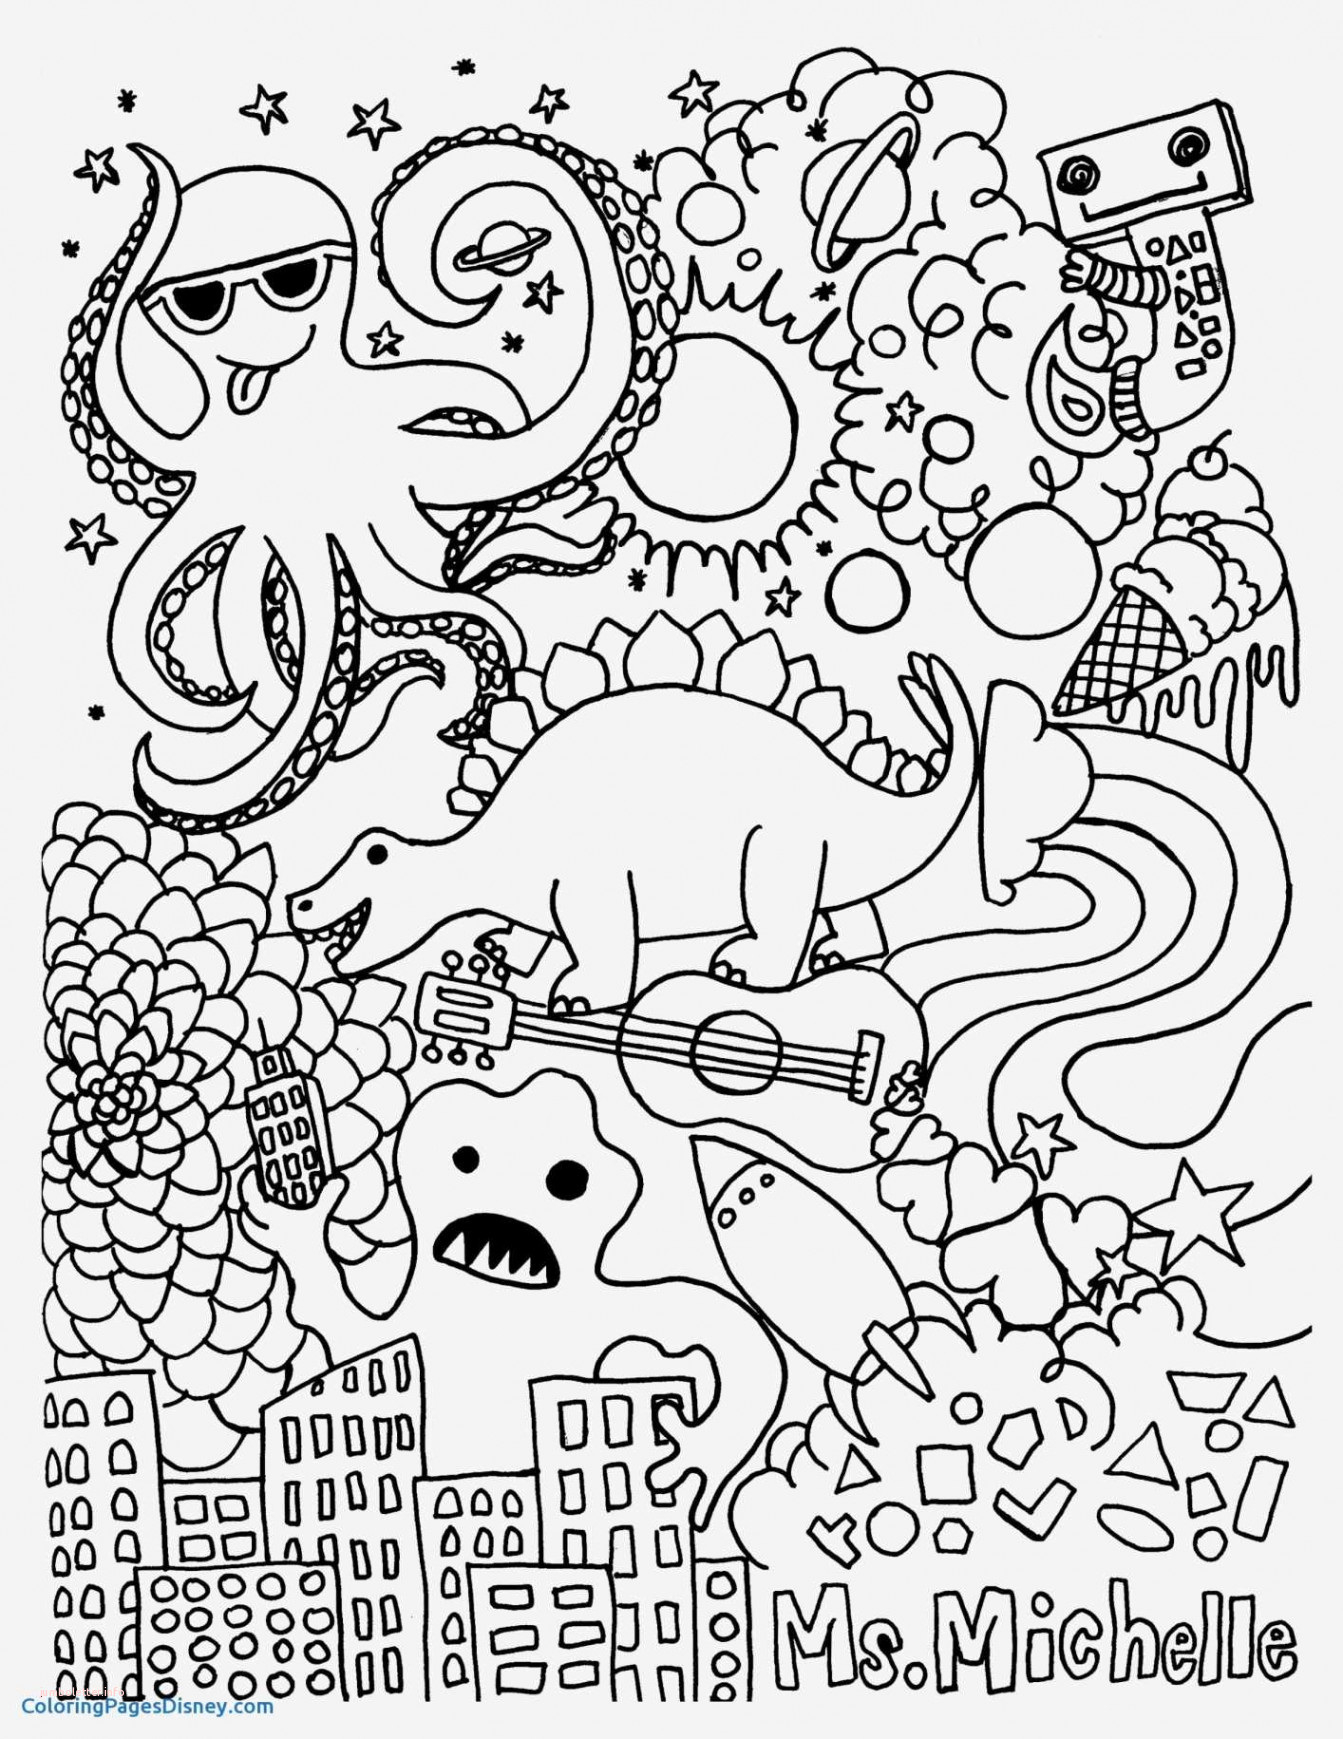 Chicago Bulls Coloring Pages  Collection 14n - Free For Children